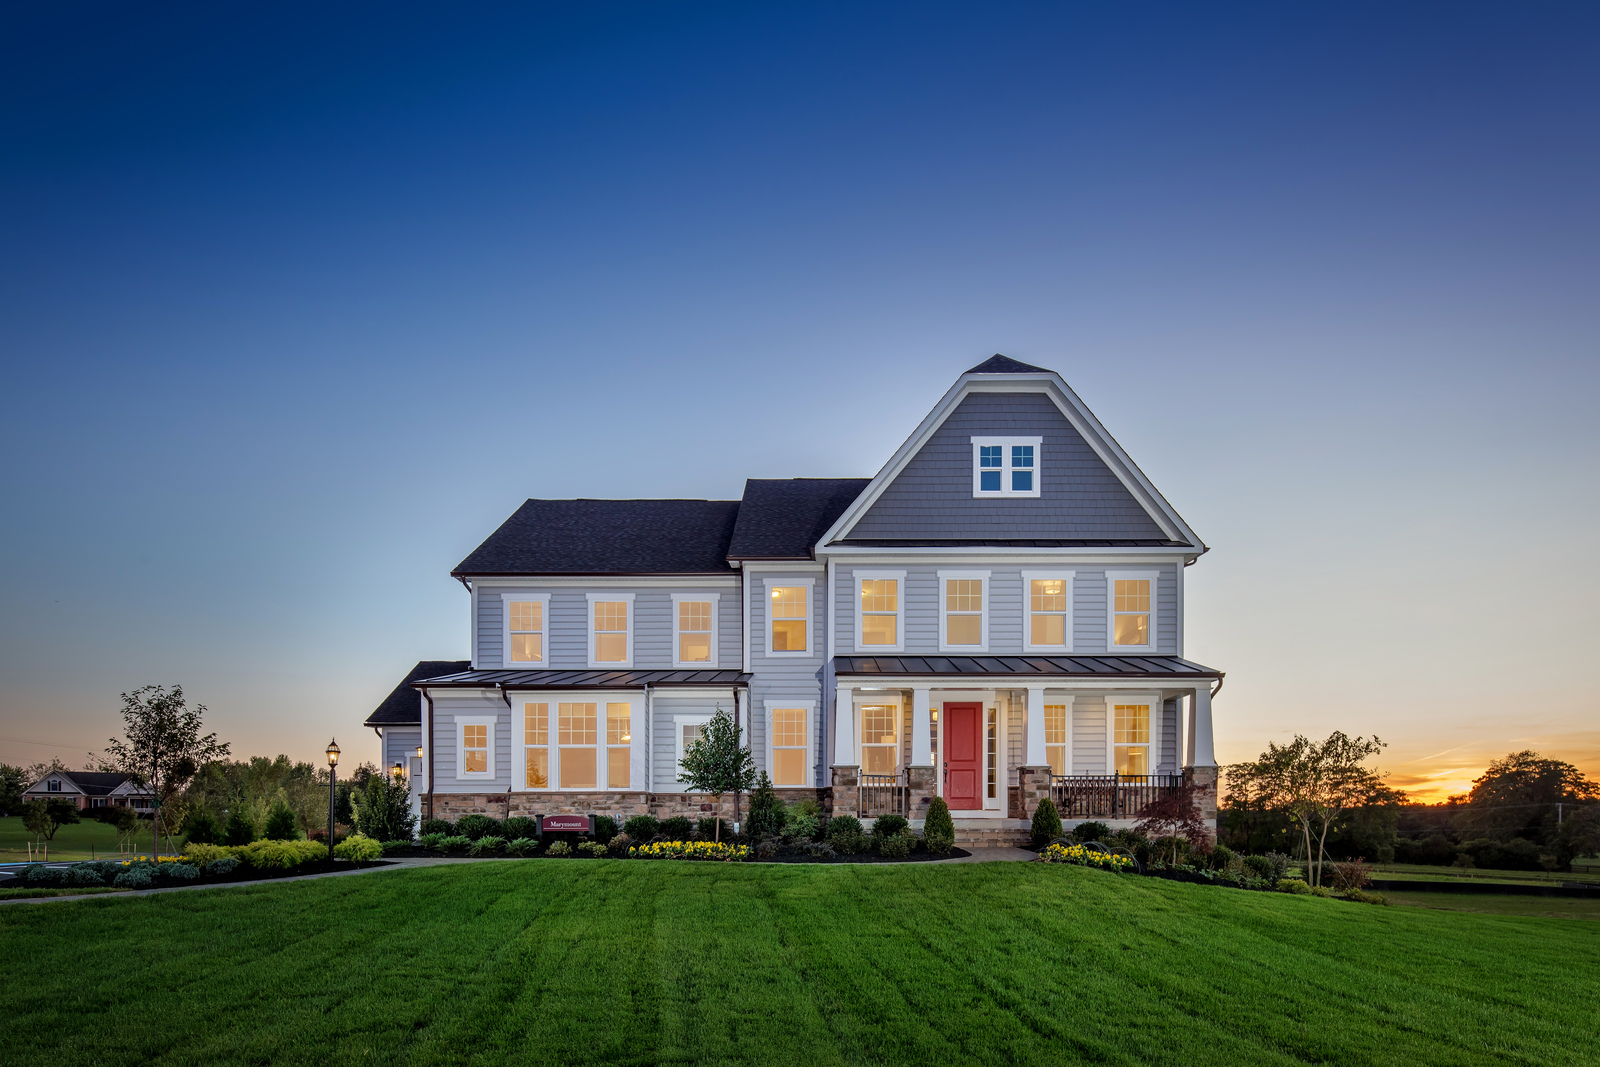 New Luxury Homes for Sale at Rustin Walk in West Chester PA within – Rustin Walk Site Plan